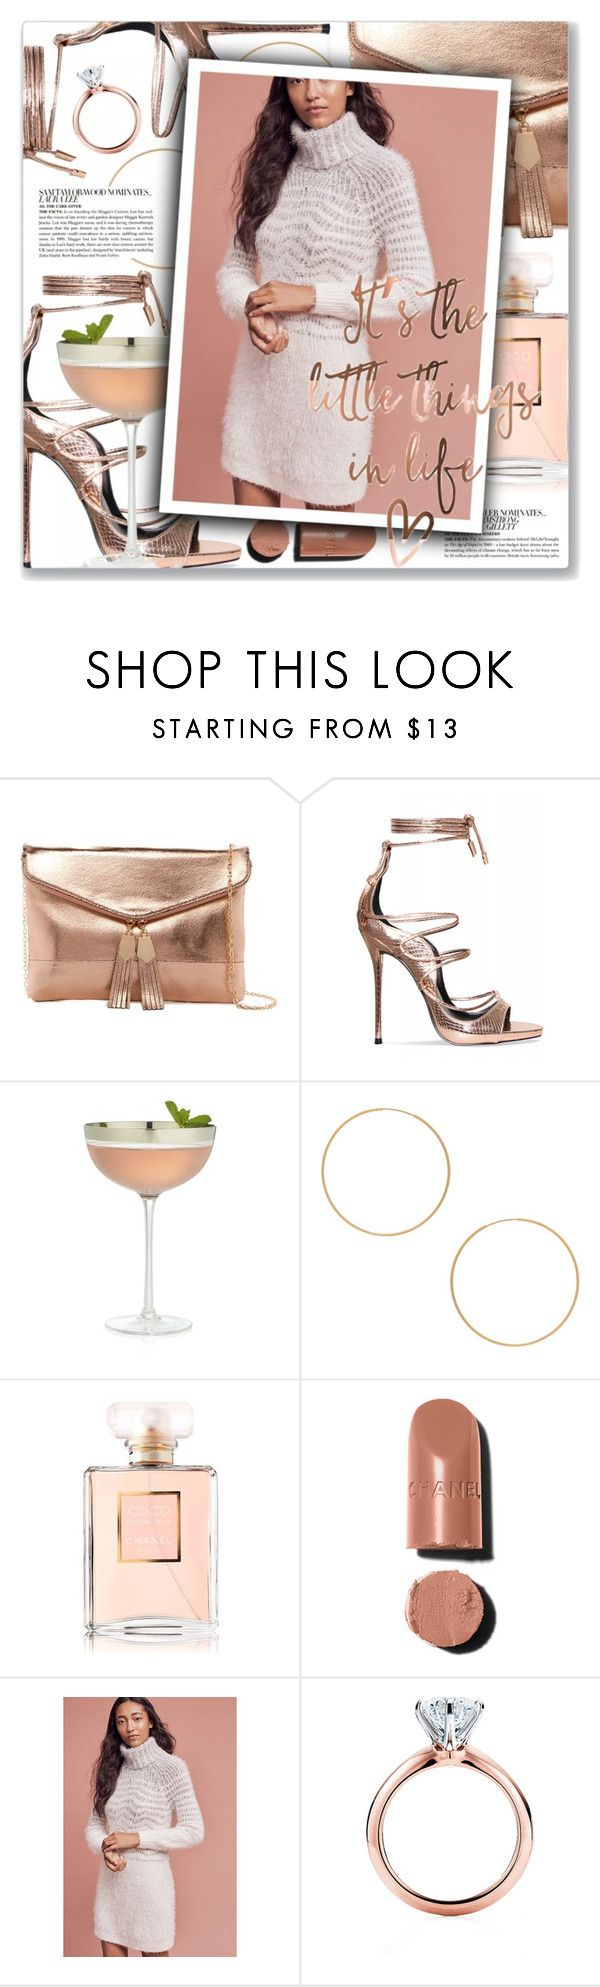 """""""Eres, Café Tacvba"""" by blendasantos ❤ liked on Polyvore featuring Urban Expressions, Crate and Barrel, ERTH, McGinn, Chanel, Sleeping on Snow and Tiffany & Co."""